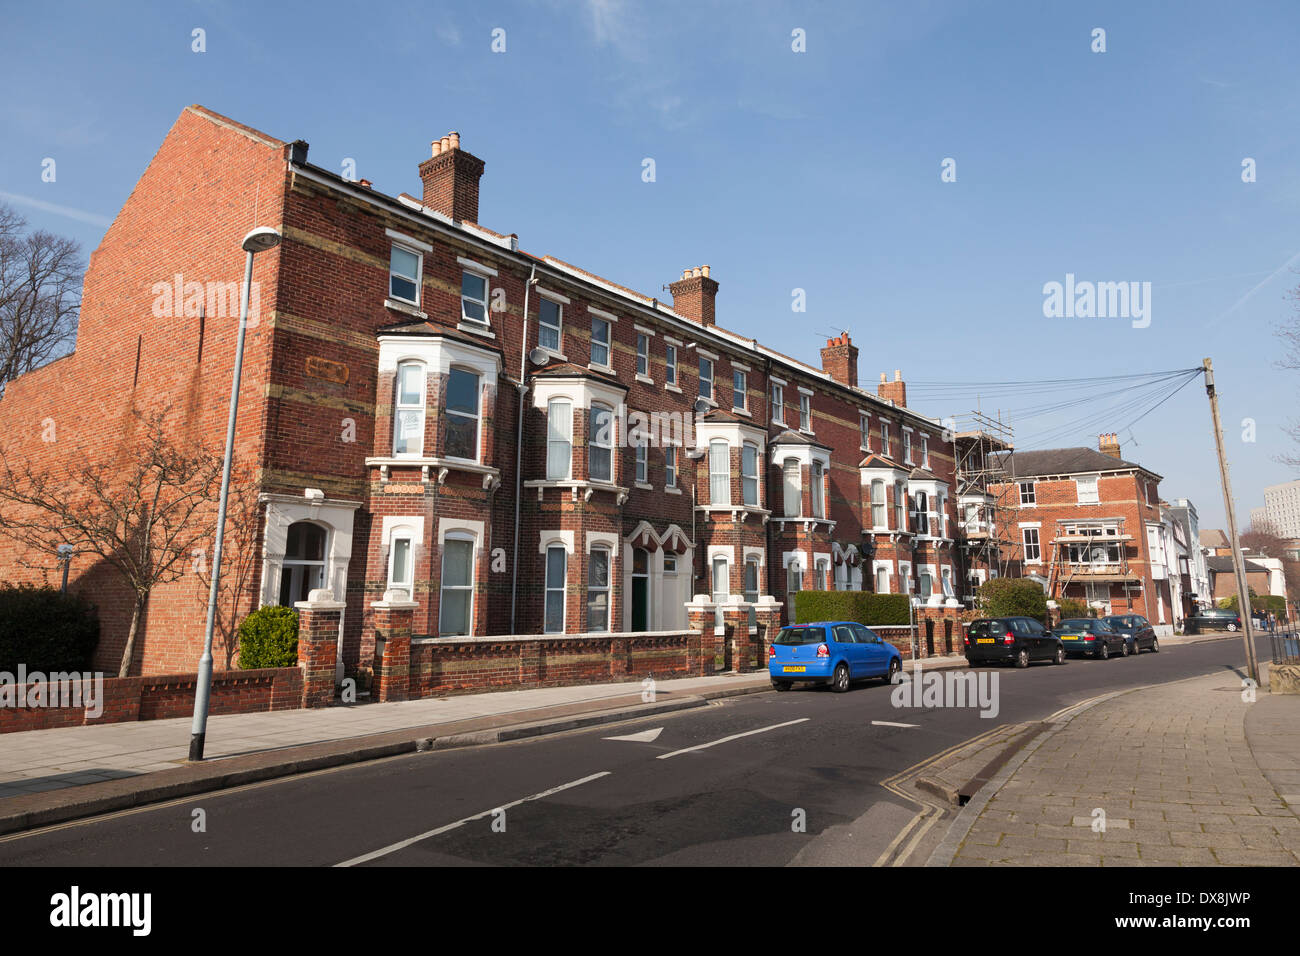 Three storey terrace houses with bay windows and front gardens. - Stock Image